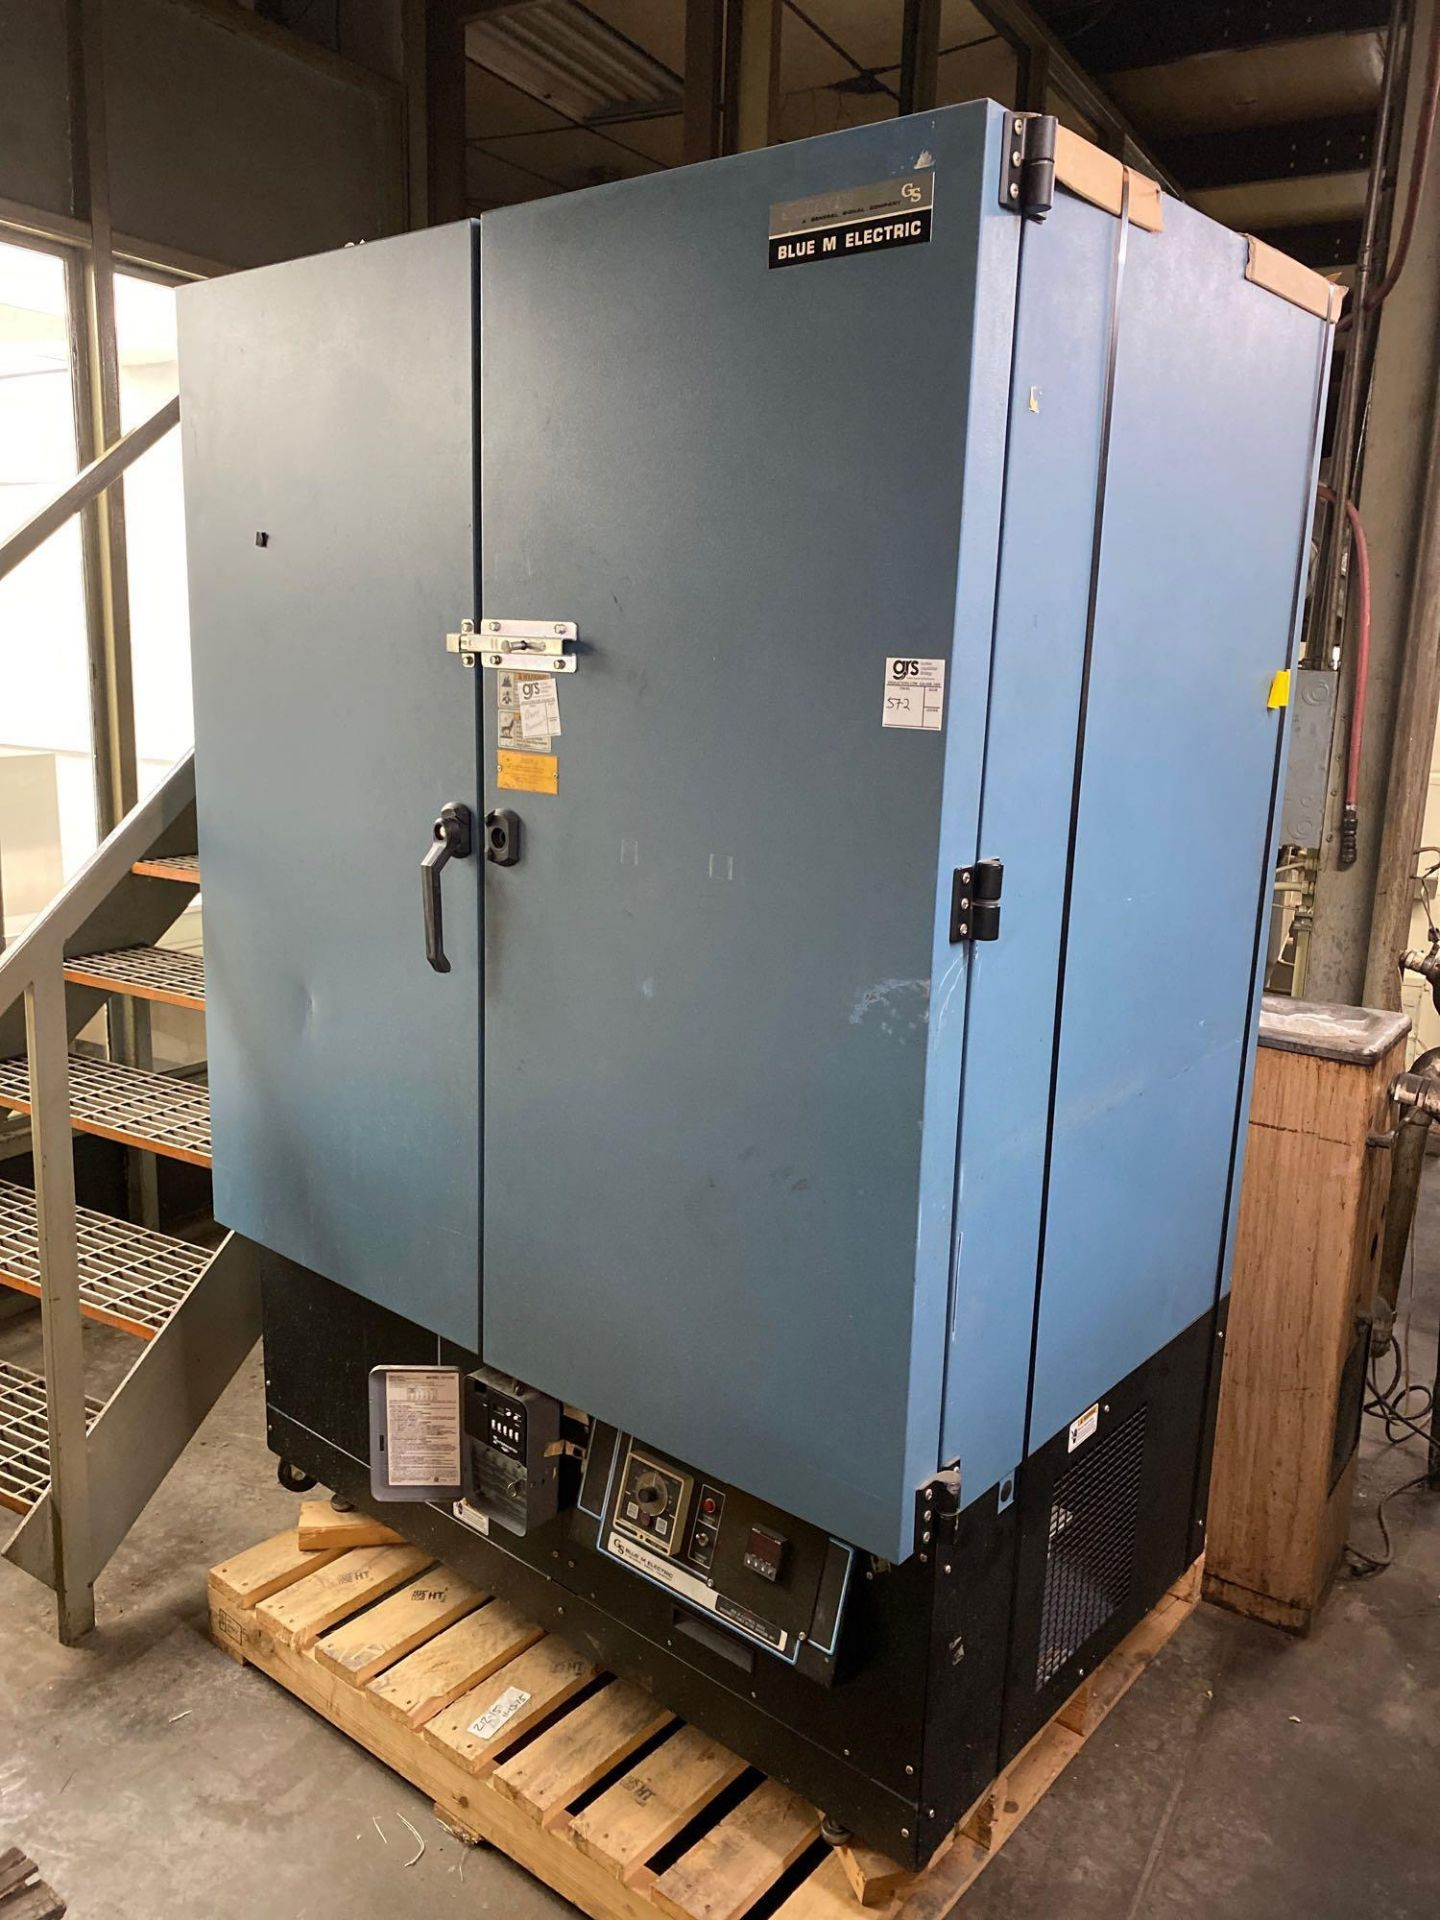 Blue M Electric Lab Oven - Image 2 of 16